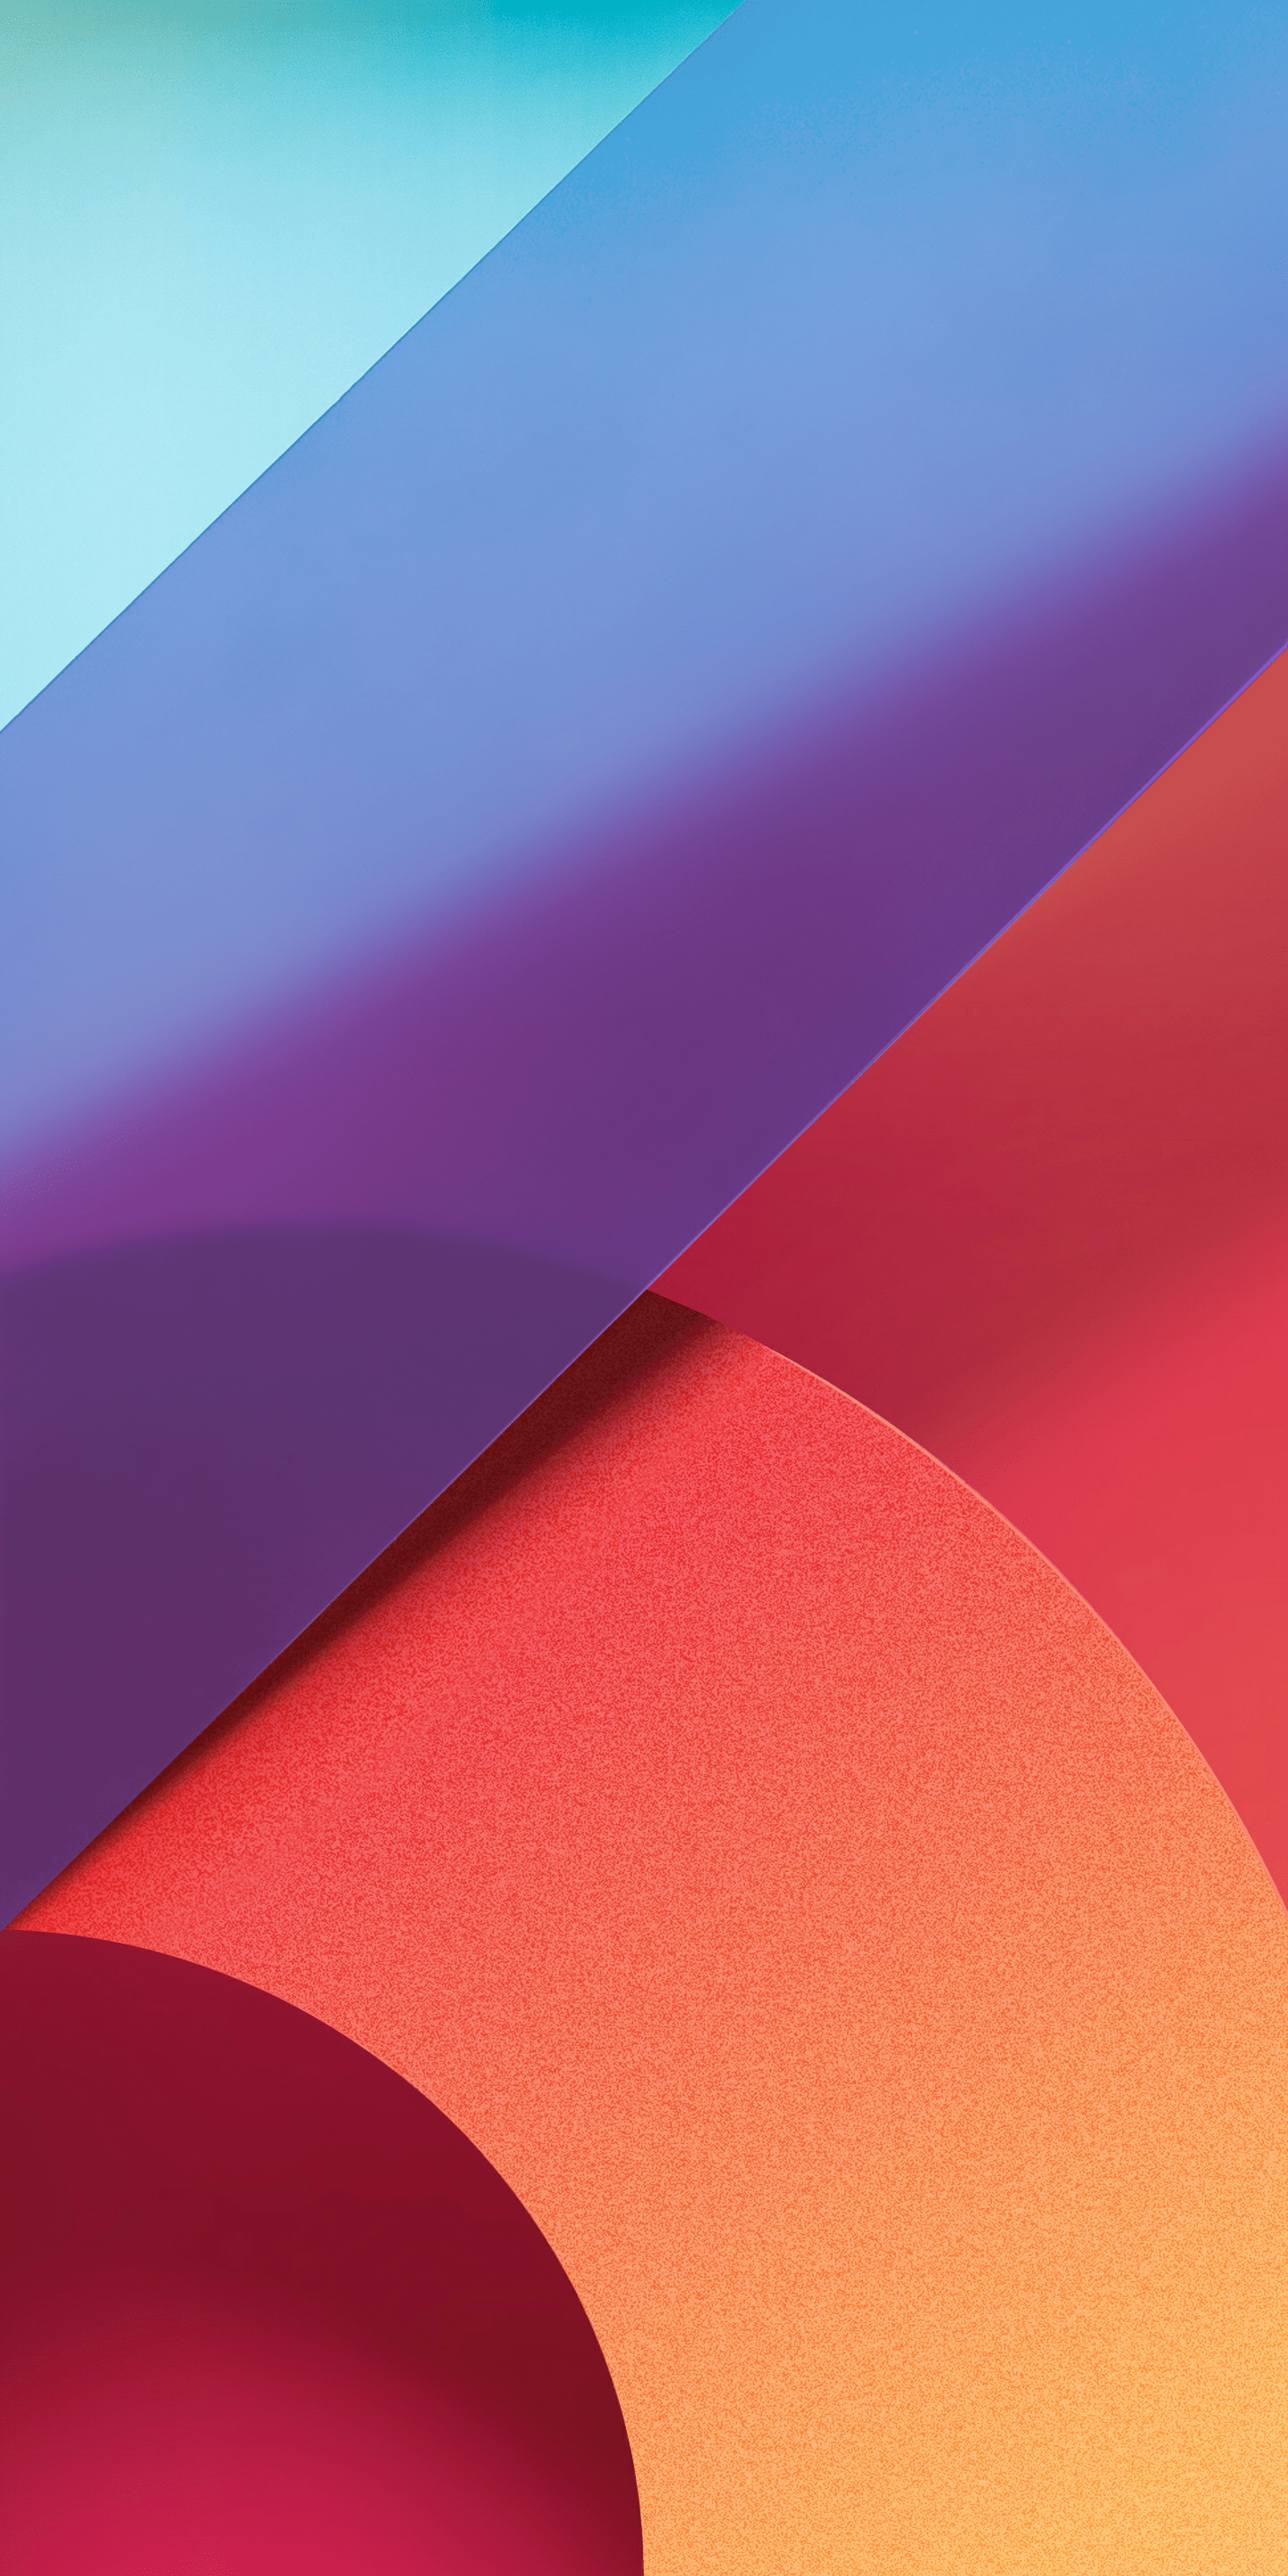 Iphone X Wallpaper With Notch Get Your Taste Of The Lg G6 With These Wallpapers Download